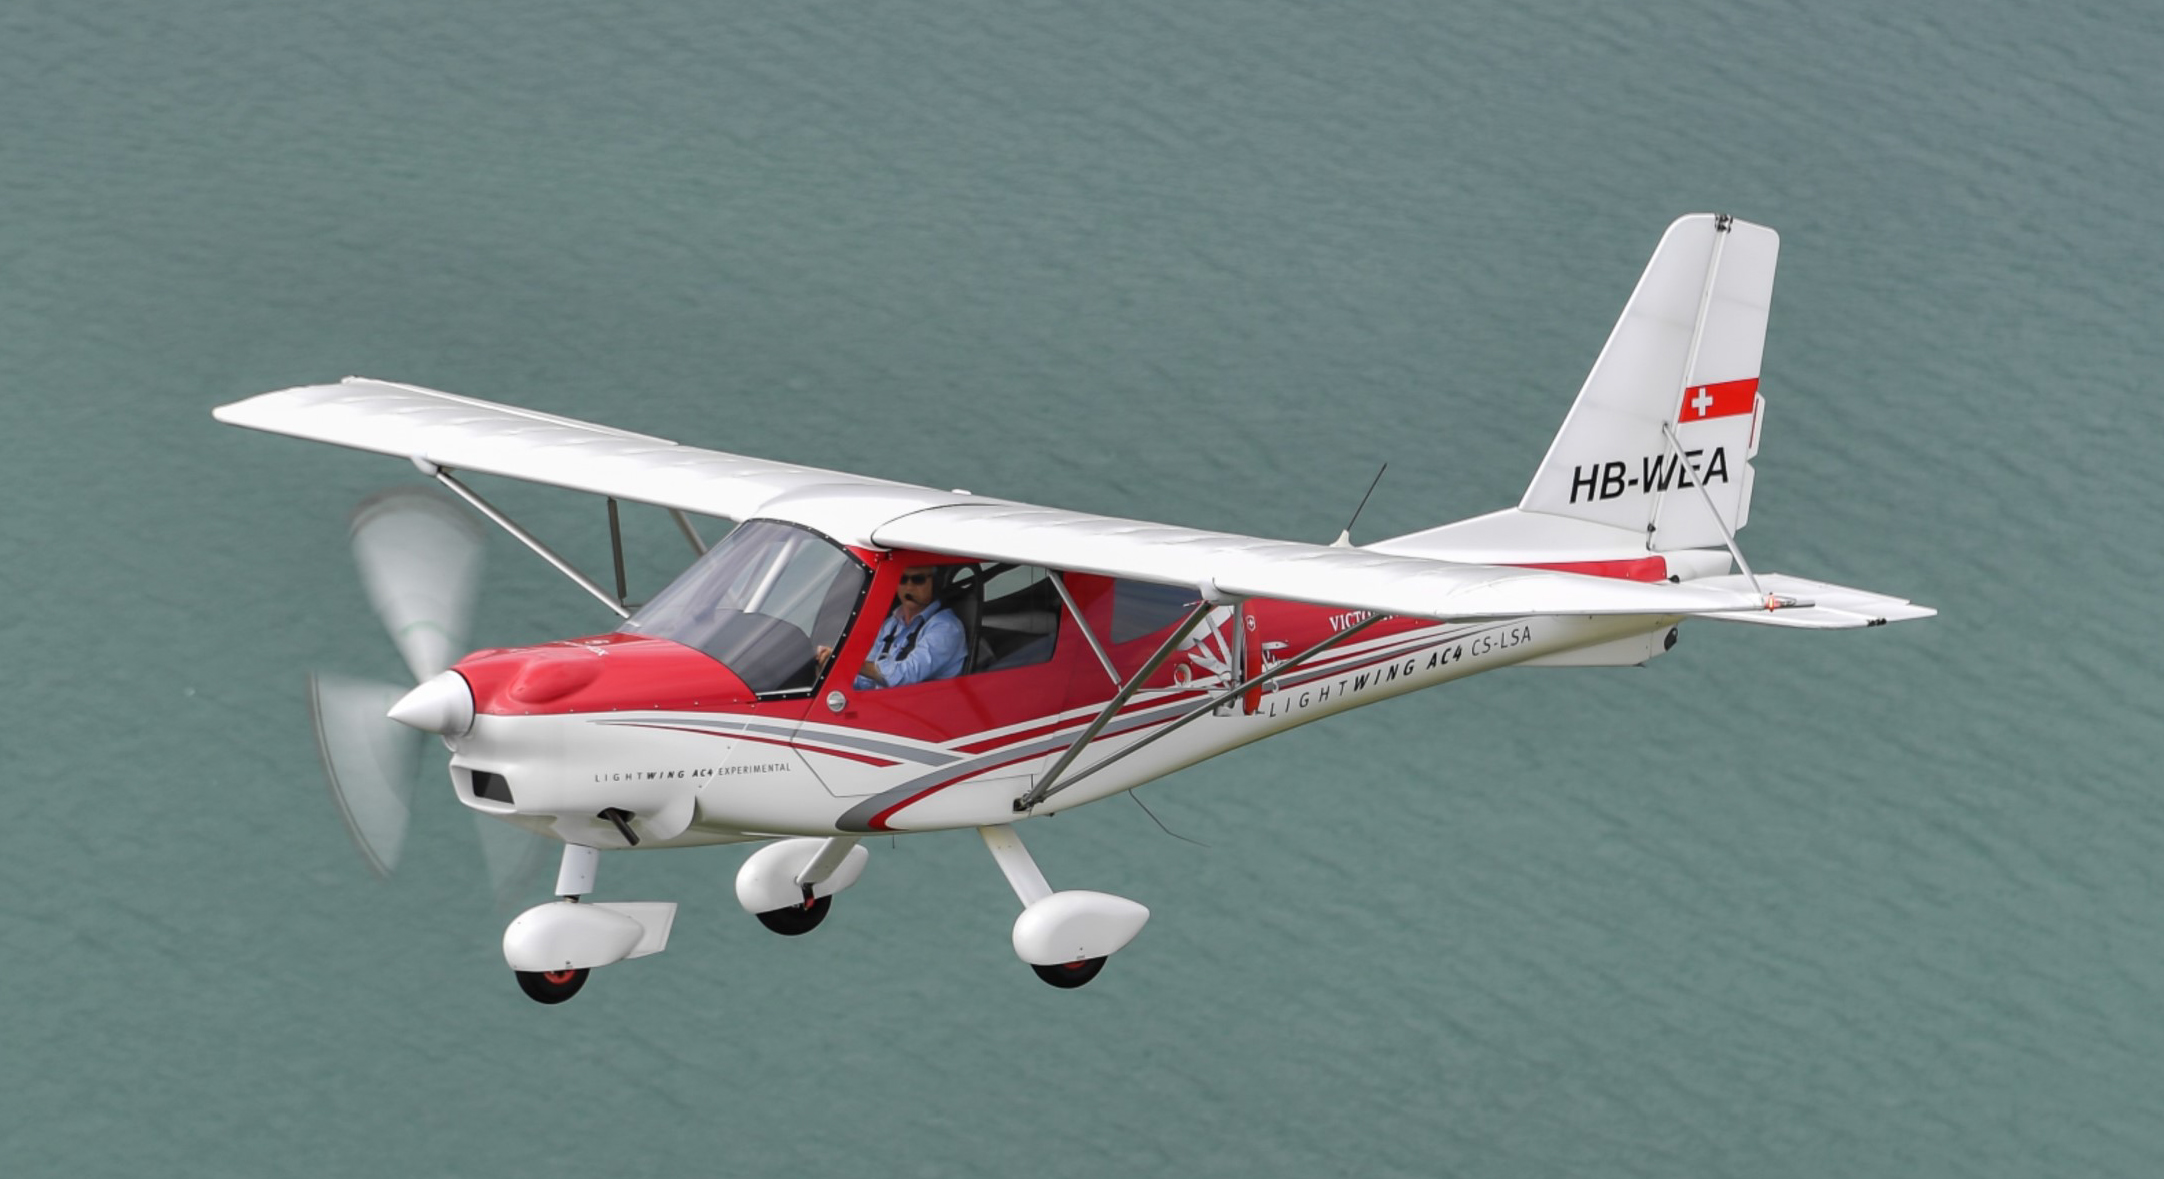 Swiss aircraft manufacturers go on a demo tour - LIGHTWING